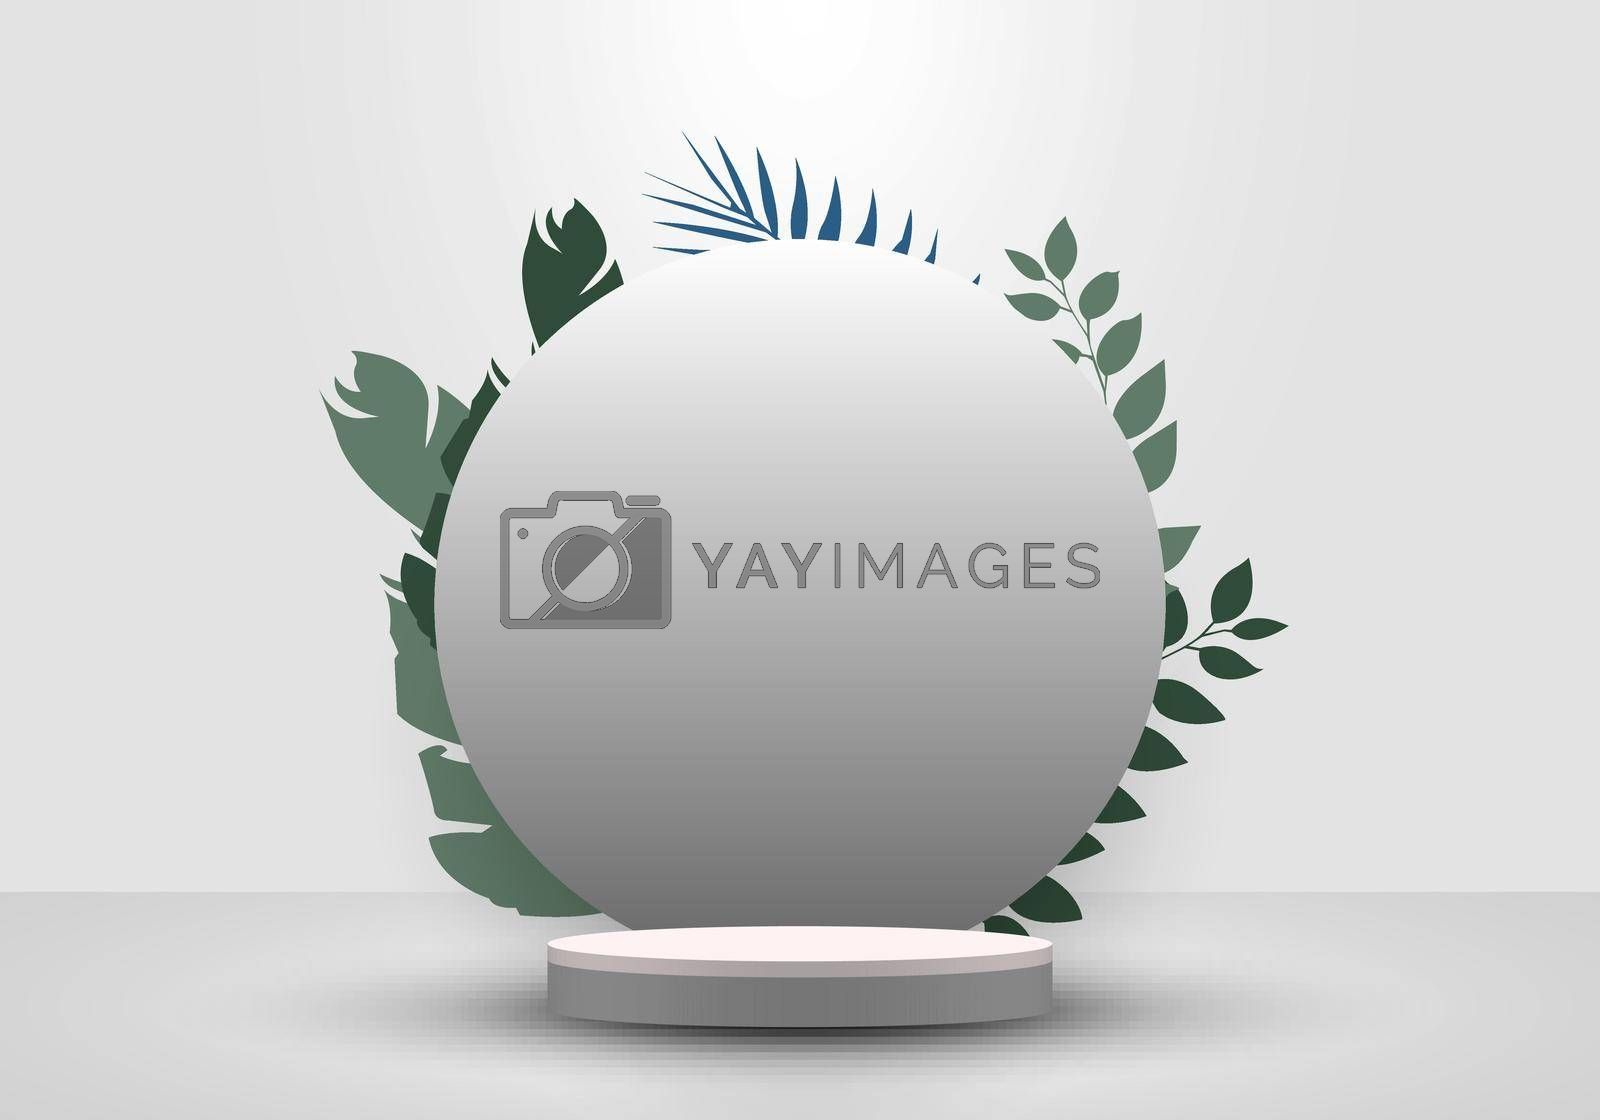 Royalty free image of 3D realistic cylinder podium minimal scene and circle backdrop in white background with tropical green leaves by phochi